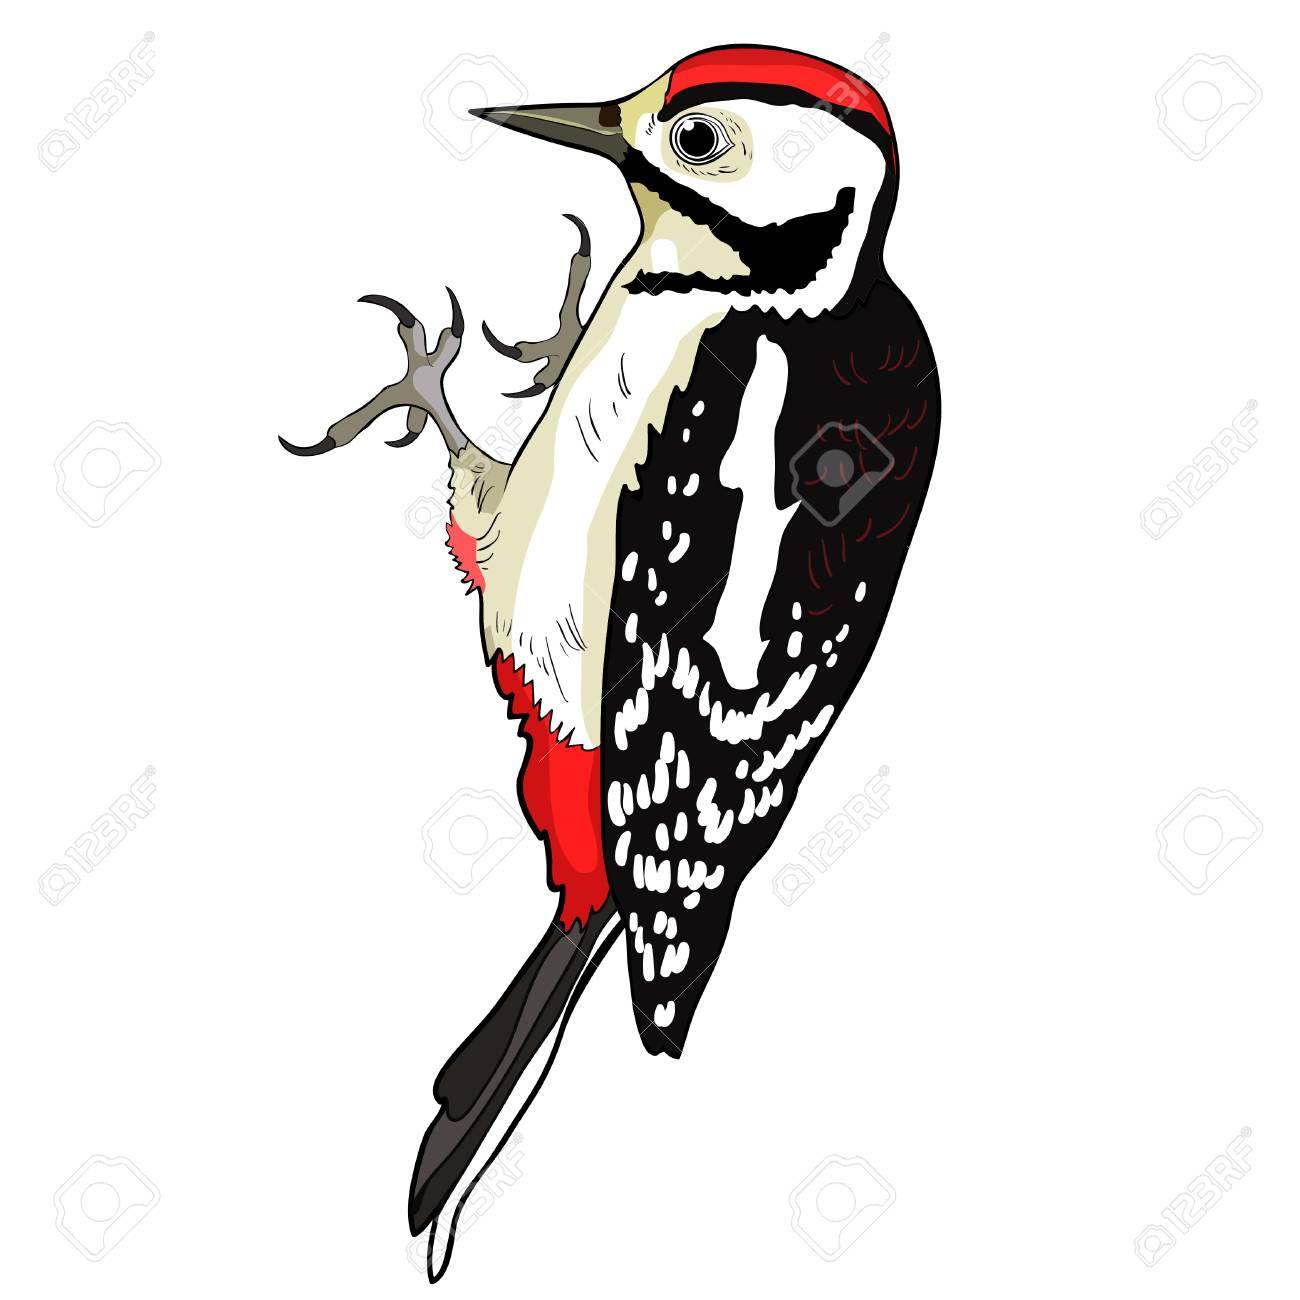 the great spotted woodpecker young vector illustration.